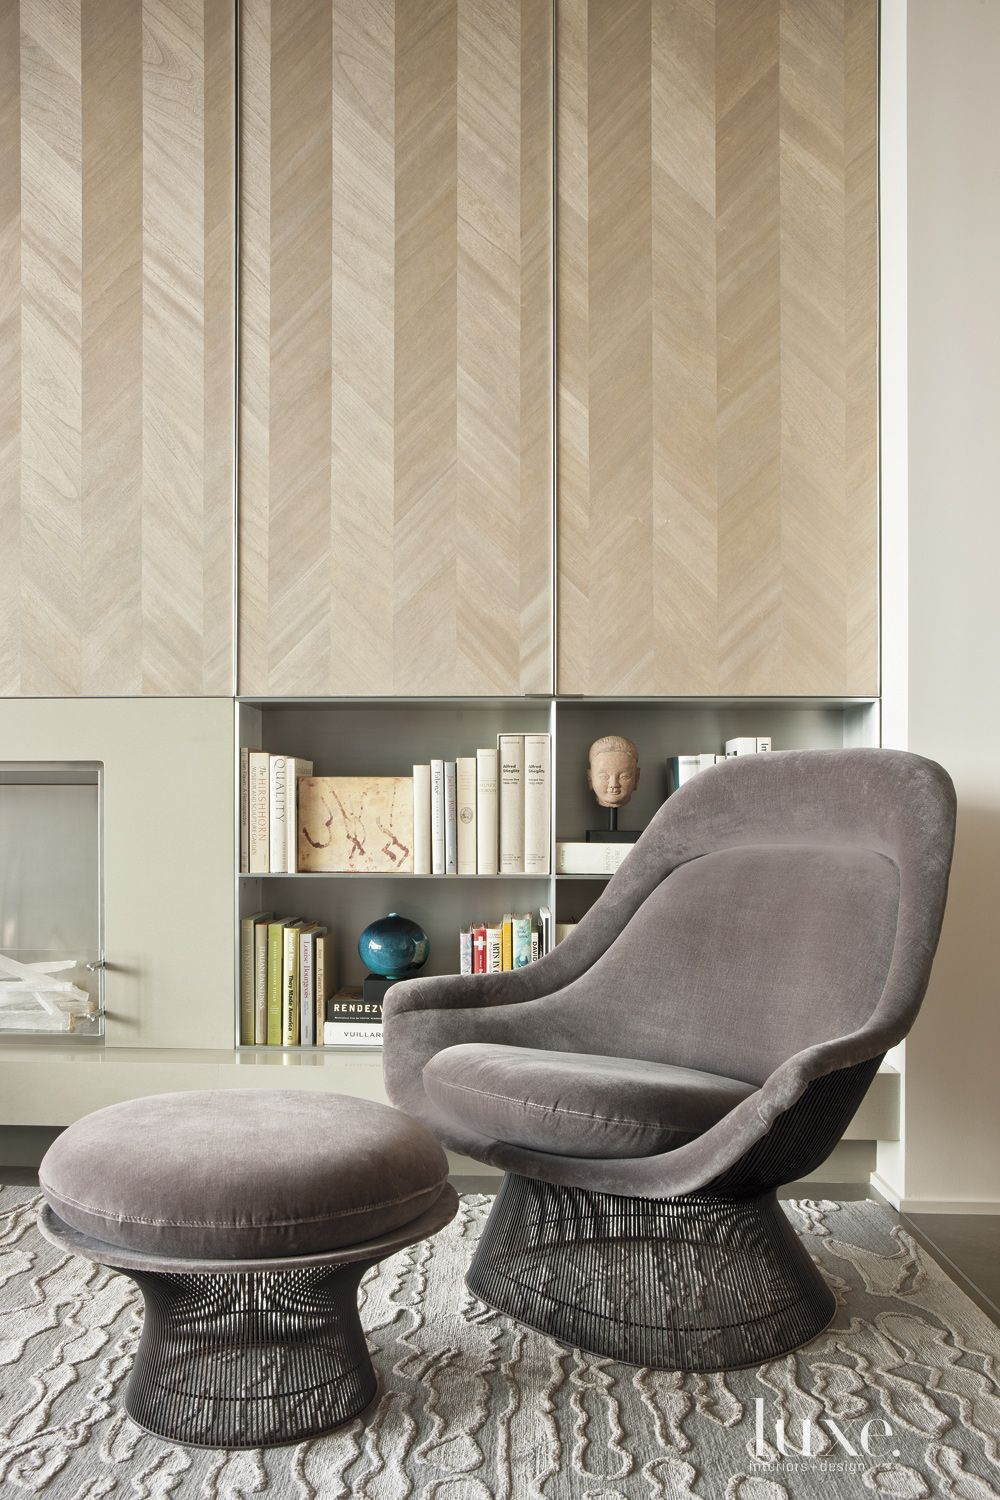 Maya Romanoff Wood Veneer Wallcovering - Jose Solis Betancourt and ...